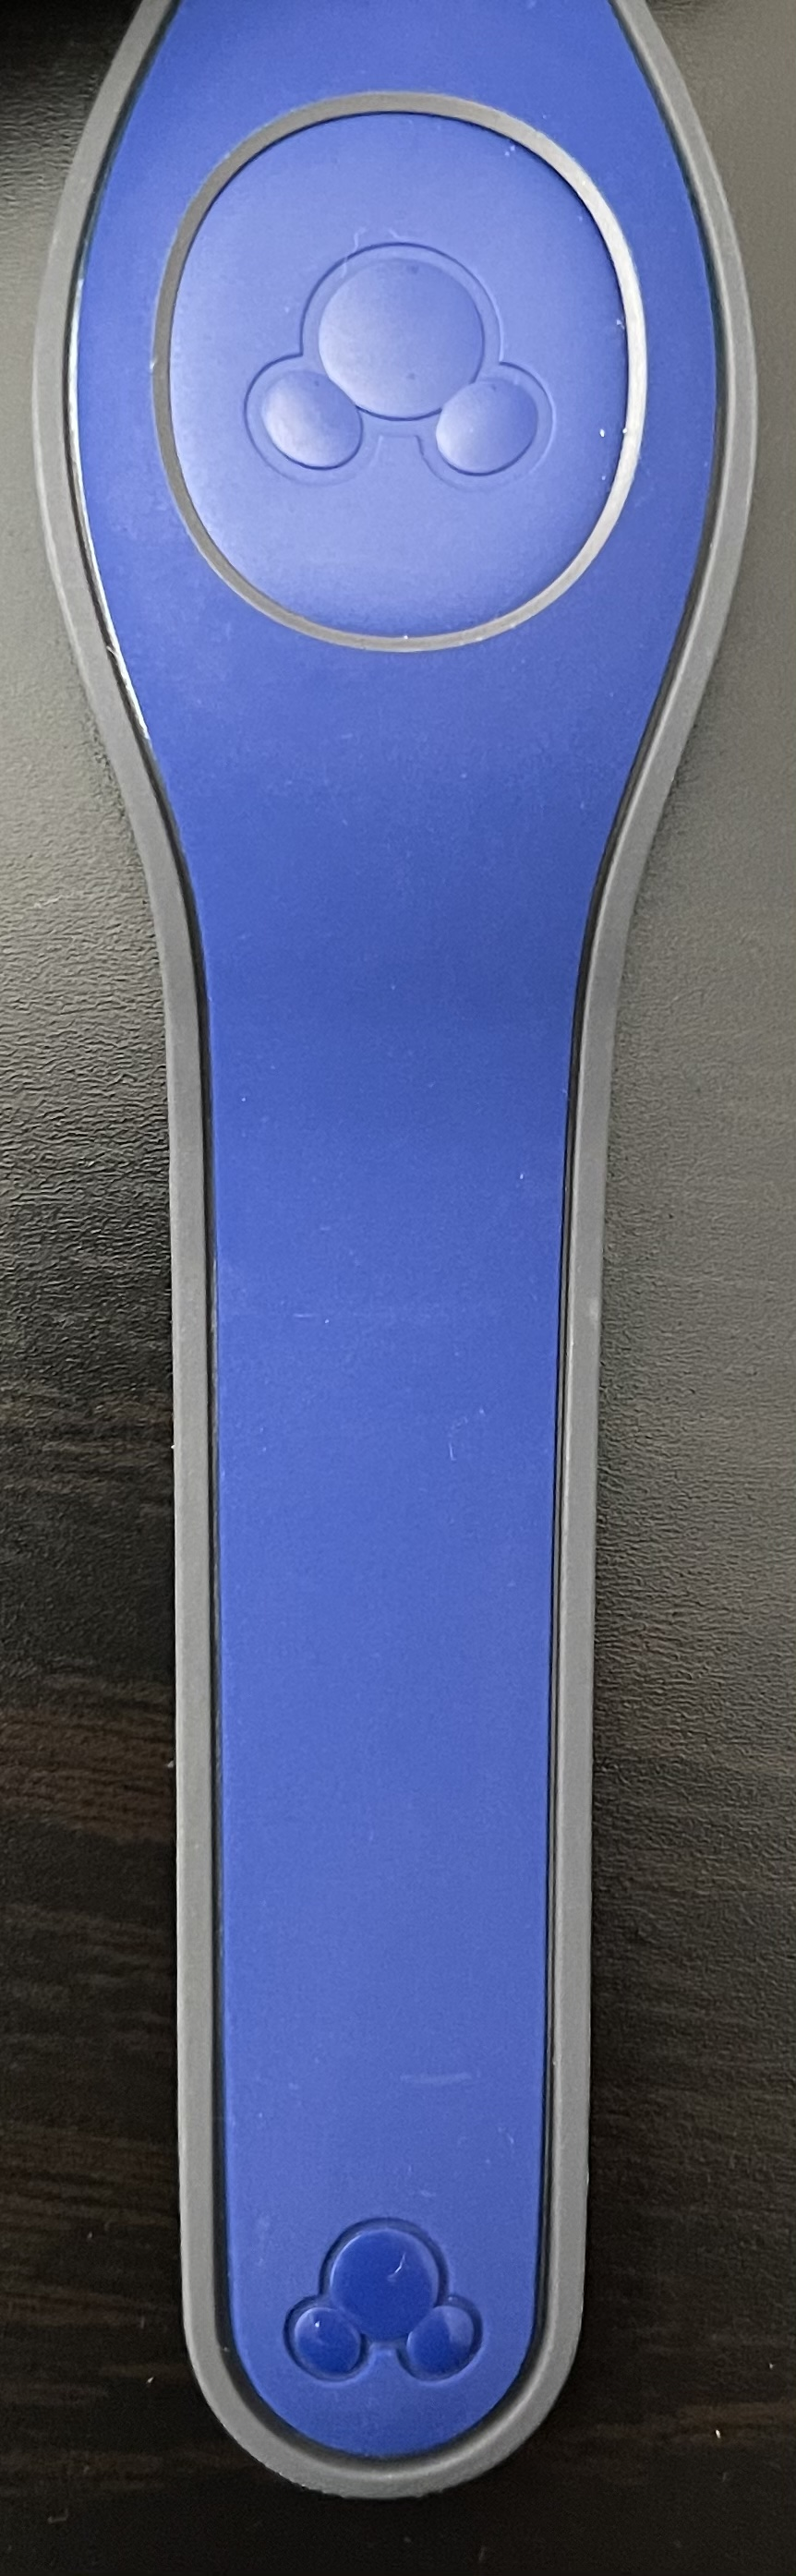 A new Royal Blue solid base color MagicBand has appeared